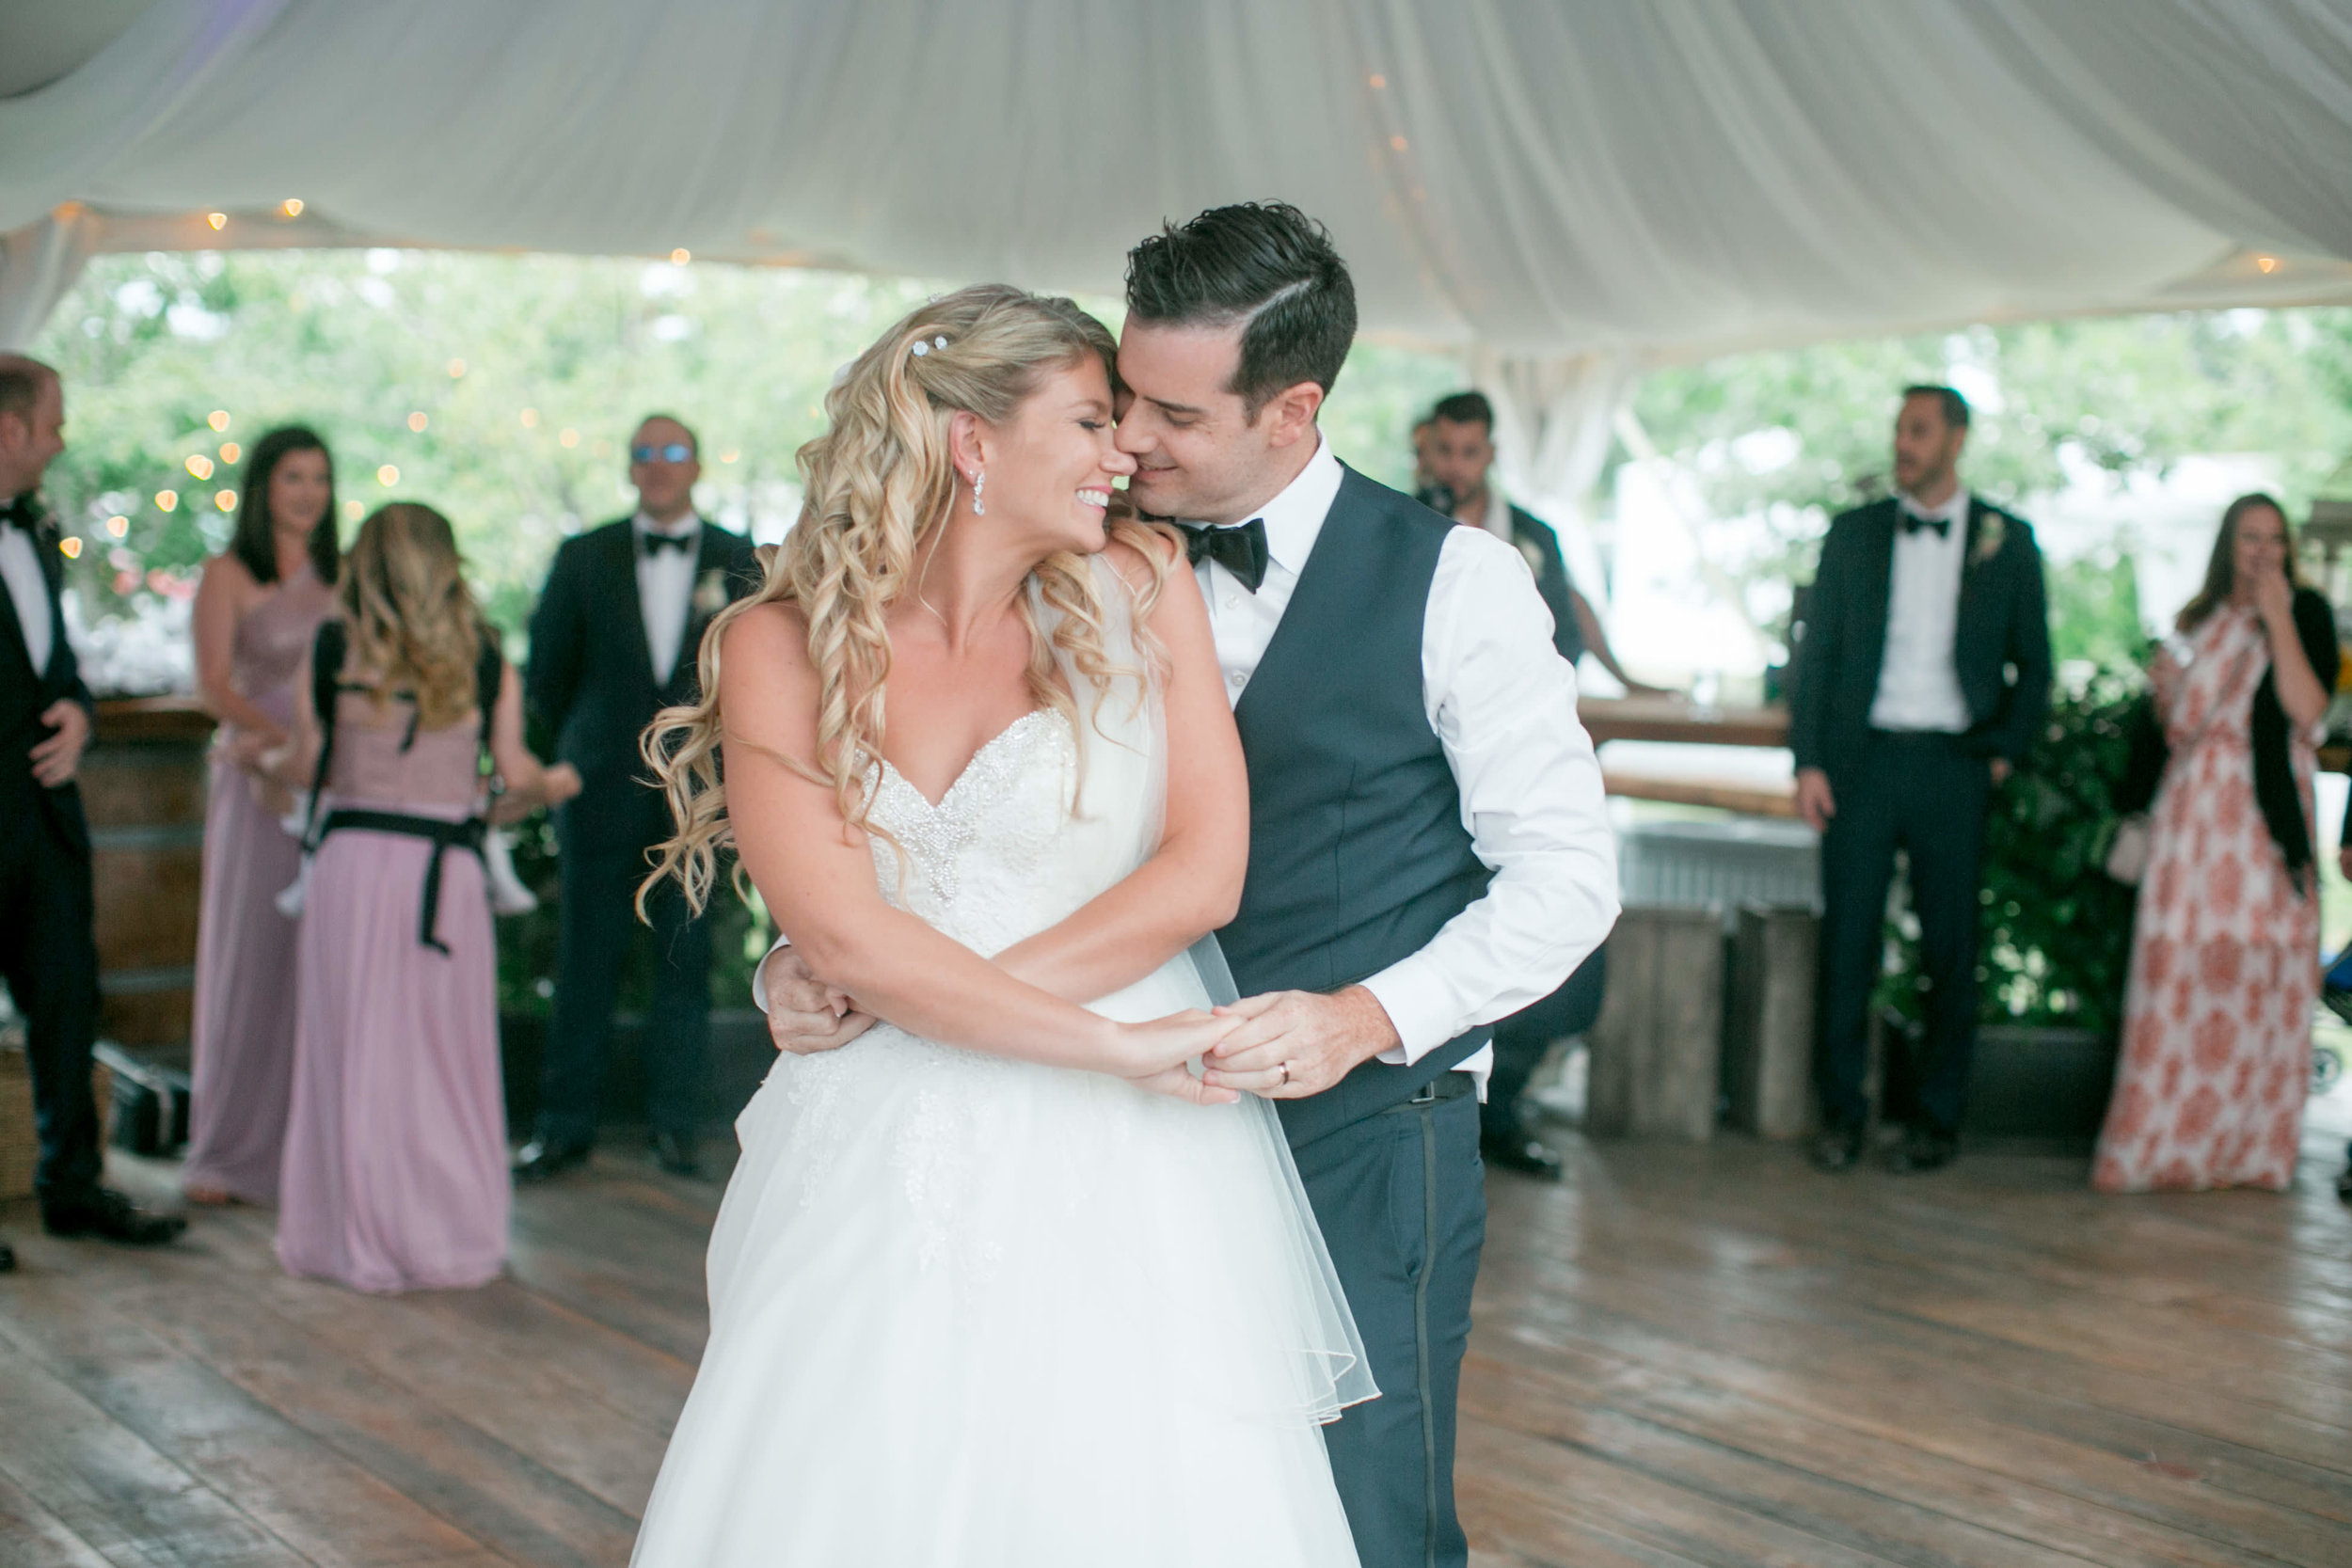 Ashley___Zac___Daniel_Ricci_Weddings___High_Res._Finals_517.jpg